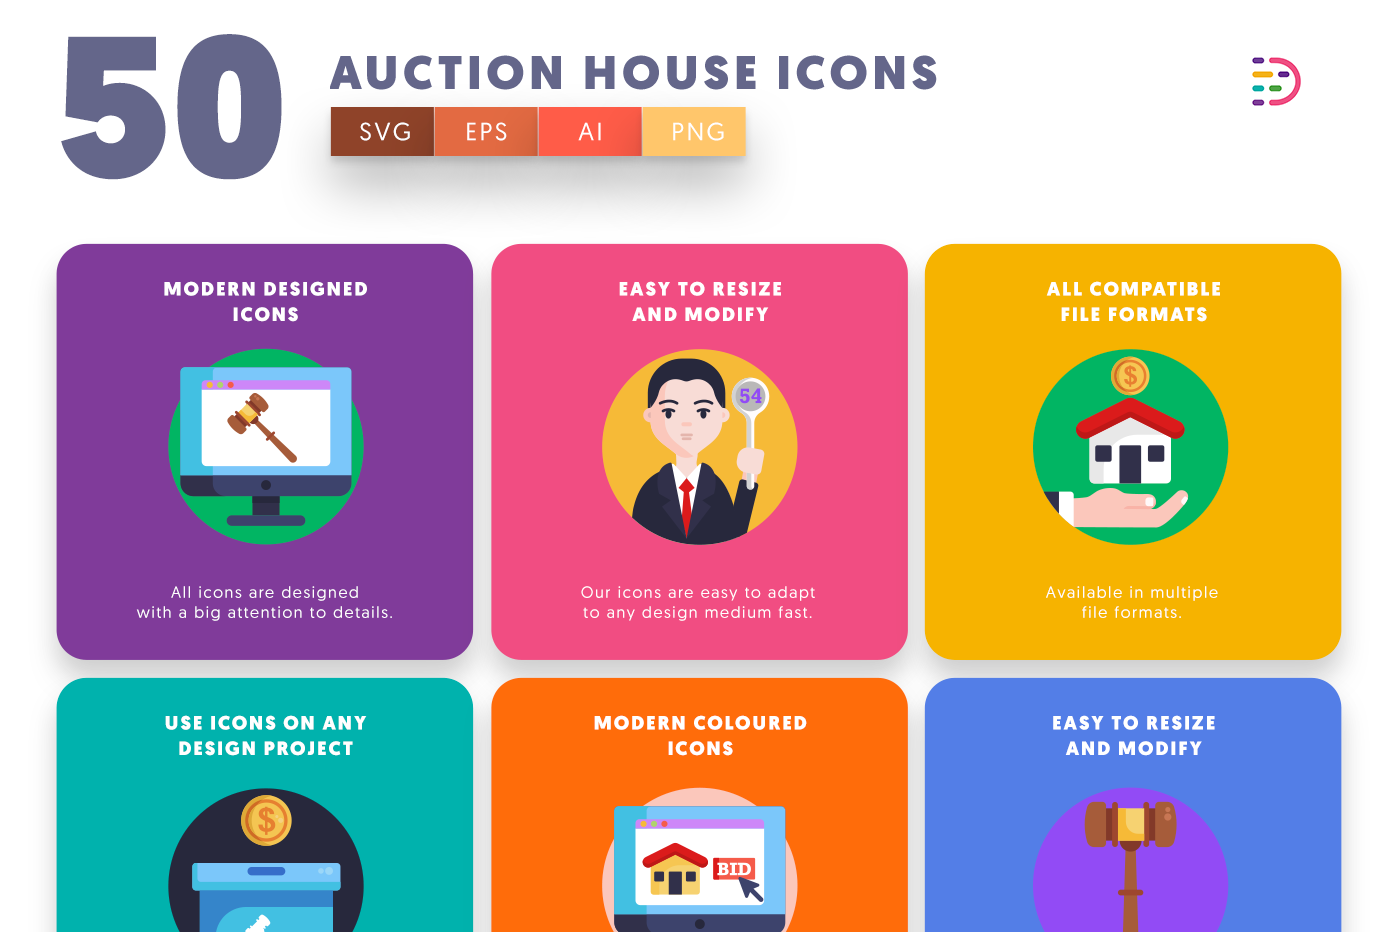 50 Auction House Icons with colored backgrounds